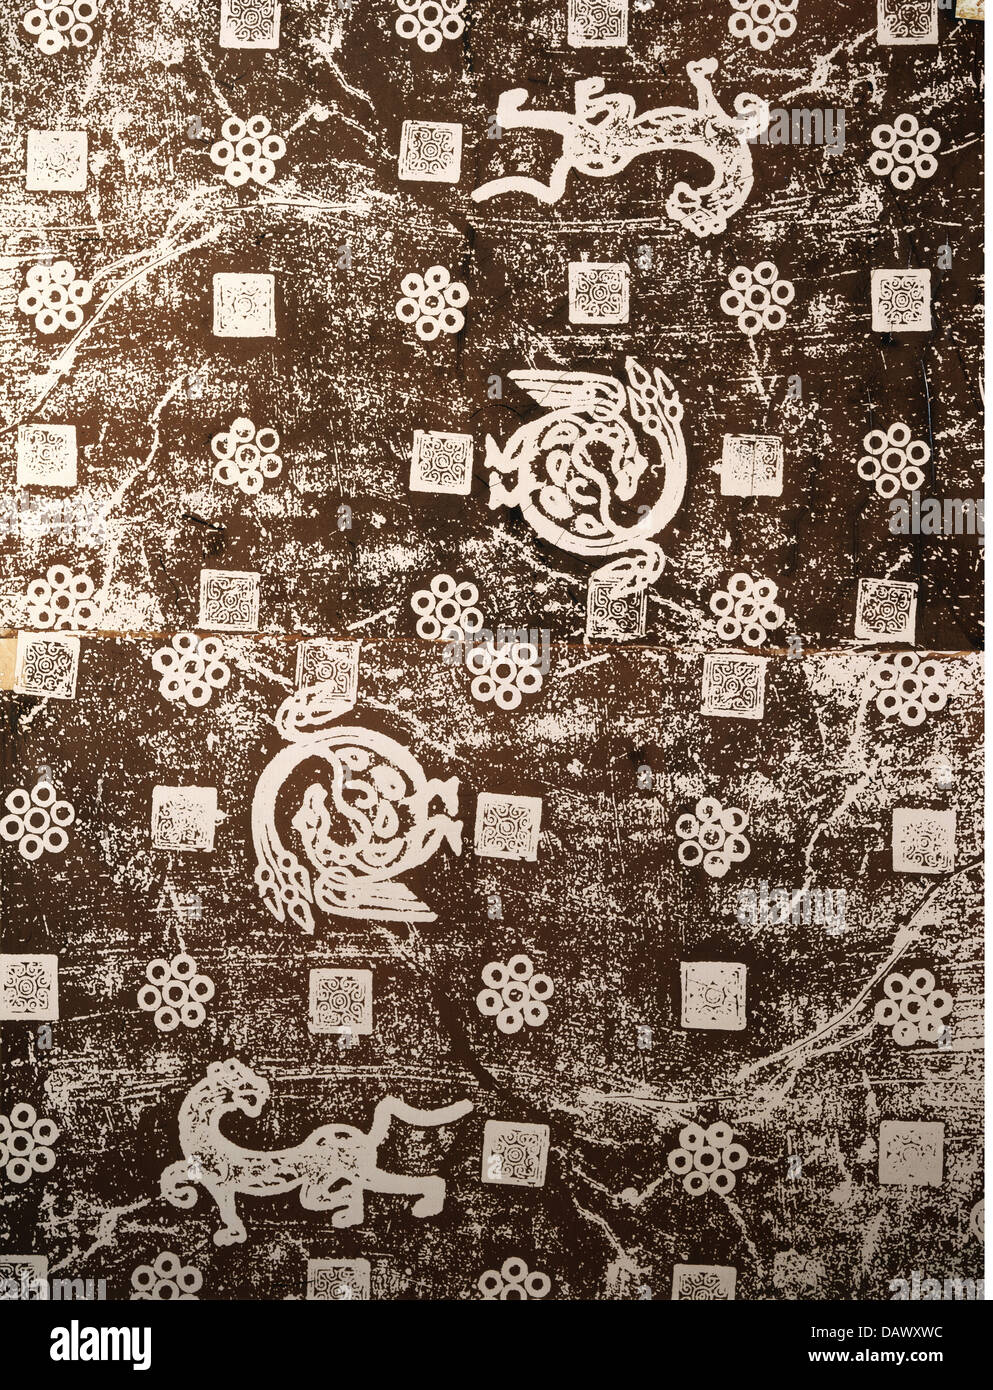 fine arts, China, brass rubbing, decorative ornament with tigers and peacocks, 6th century - 8th century, art, Chinese, - Stock Image